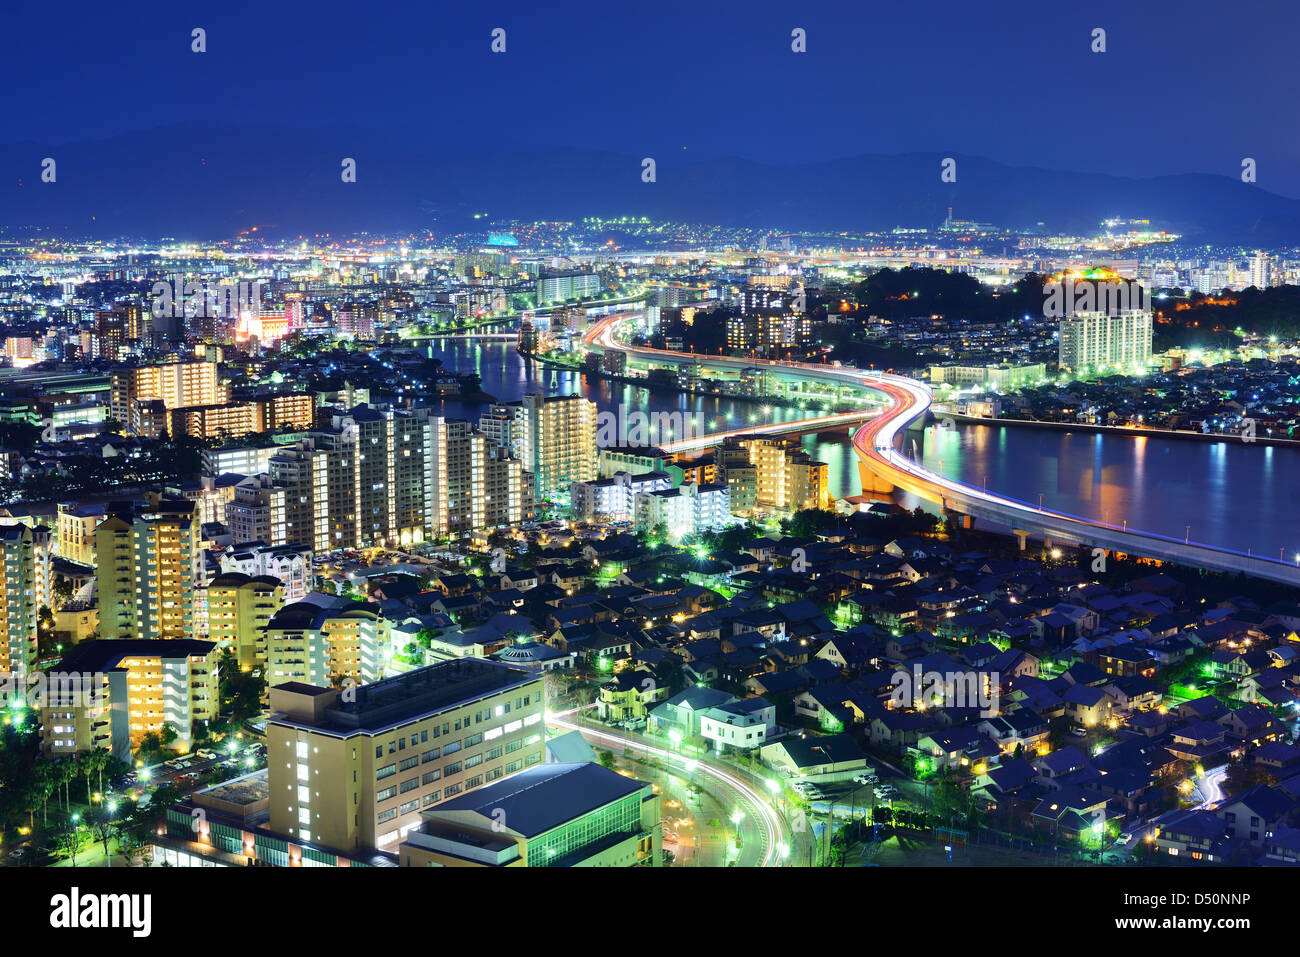 Toits de Fukuoka, Japon la nuit. Photo Stock